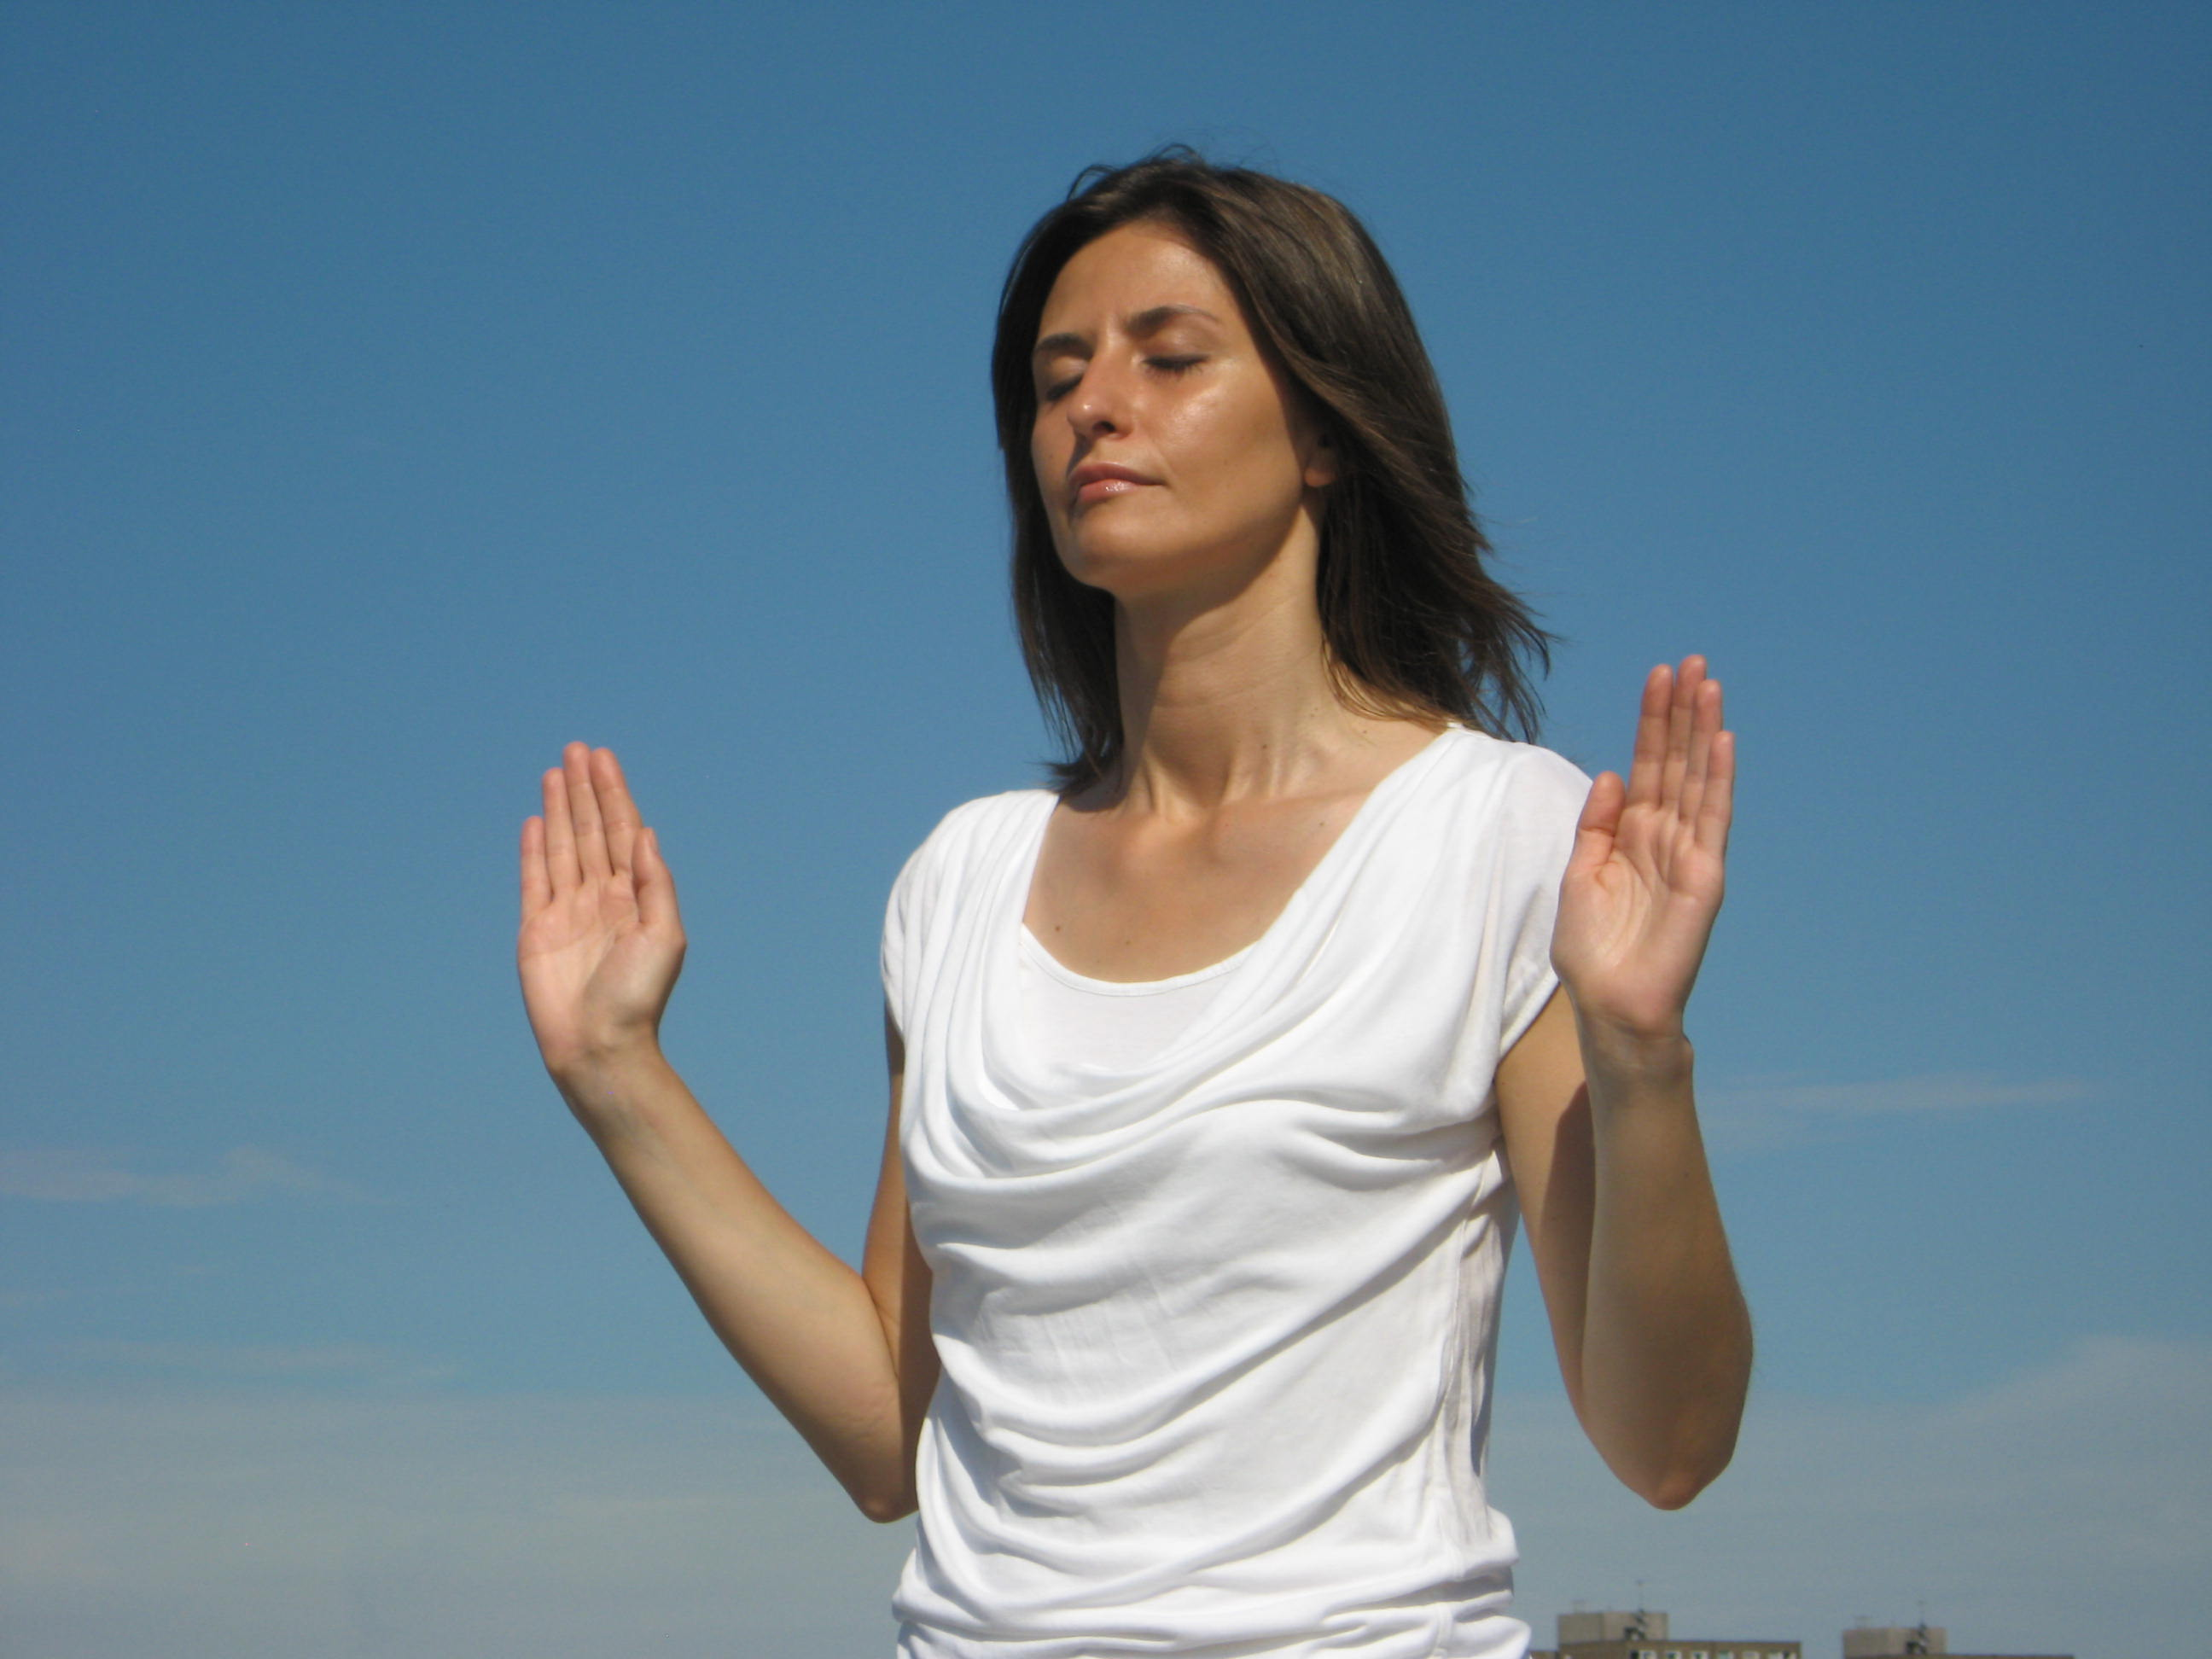 The posture for the prayer technique